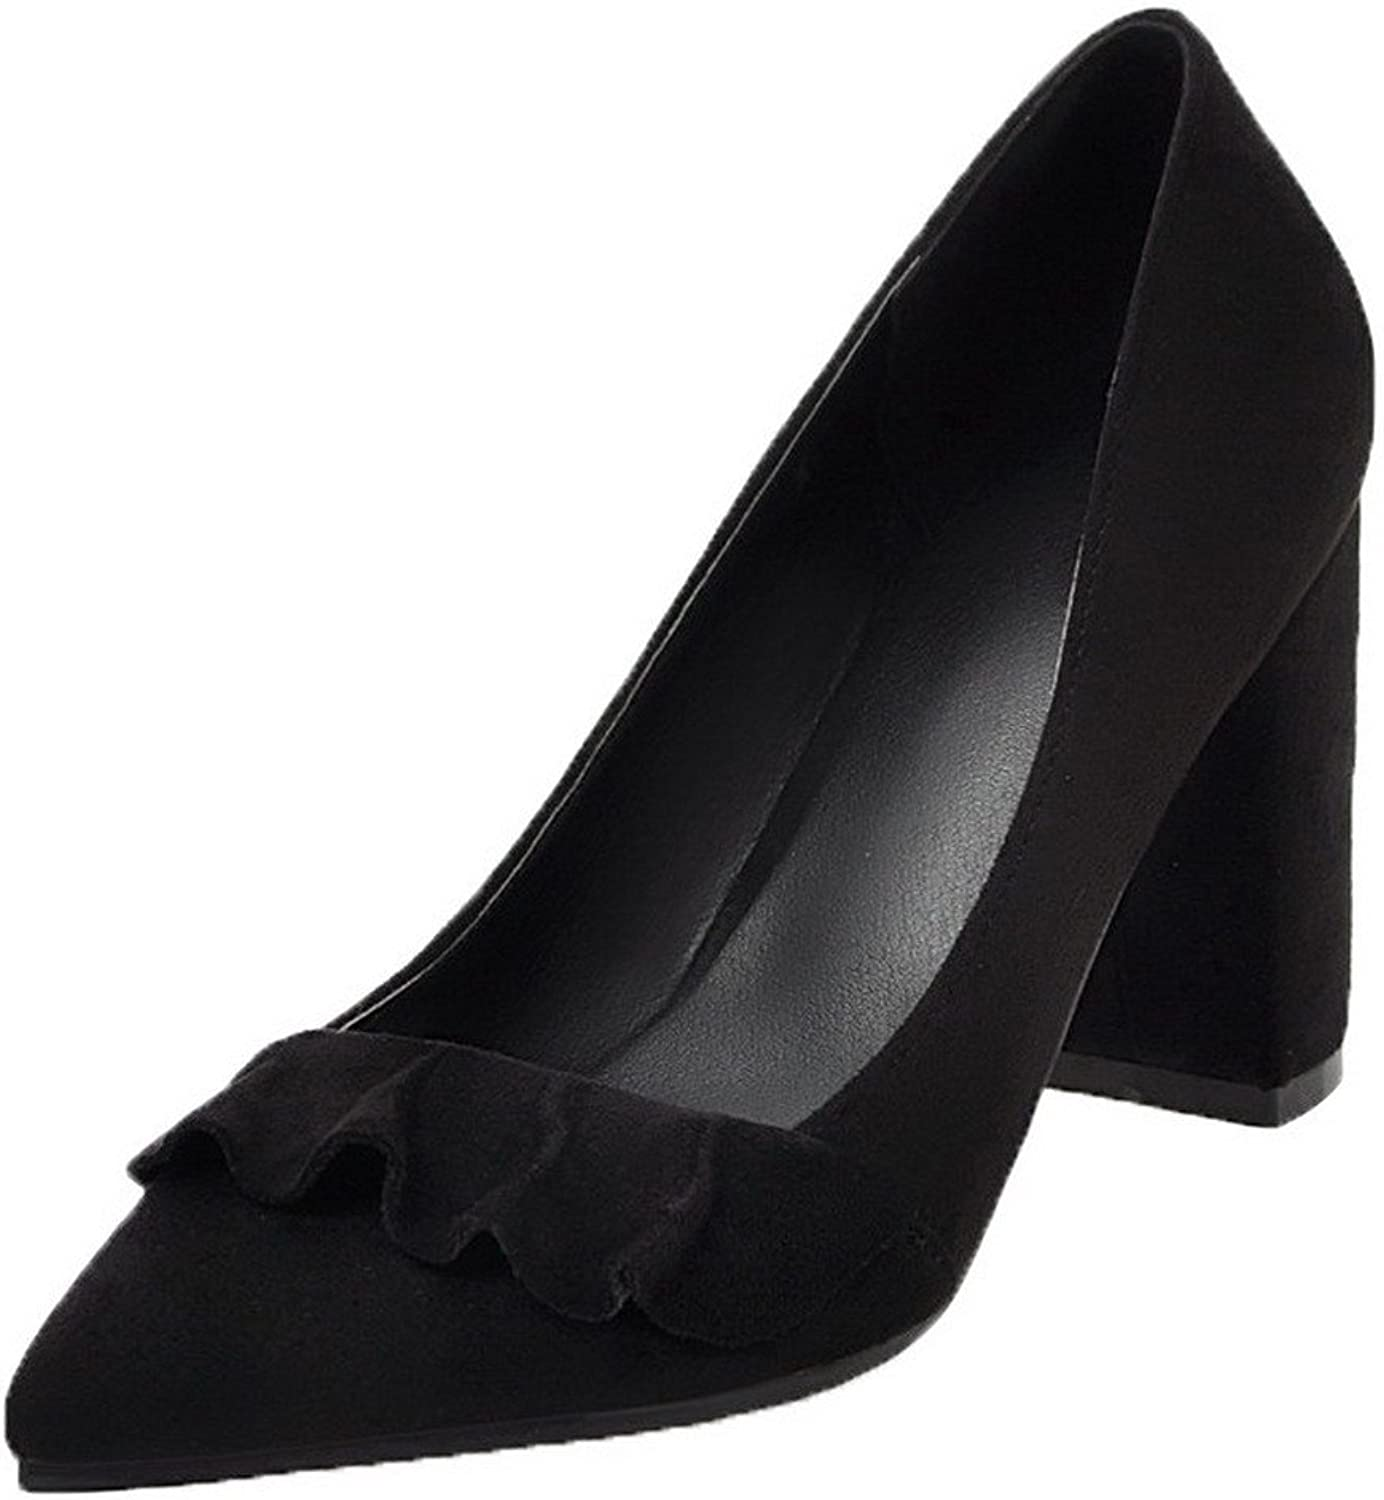 WeiPoot Women's Soild High-Heels Pointed-Toe Pull-On Pumps-shoes